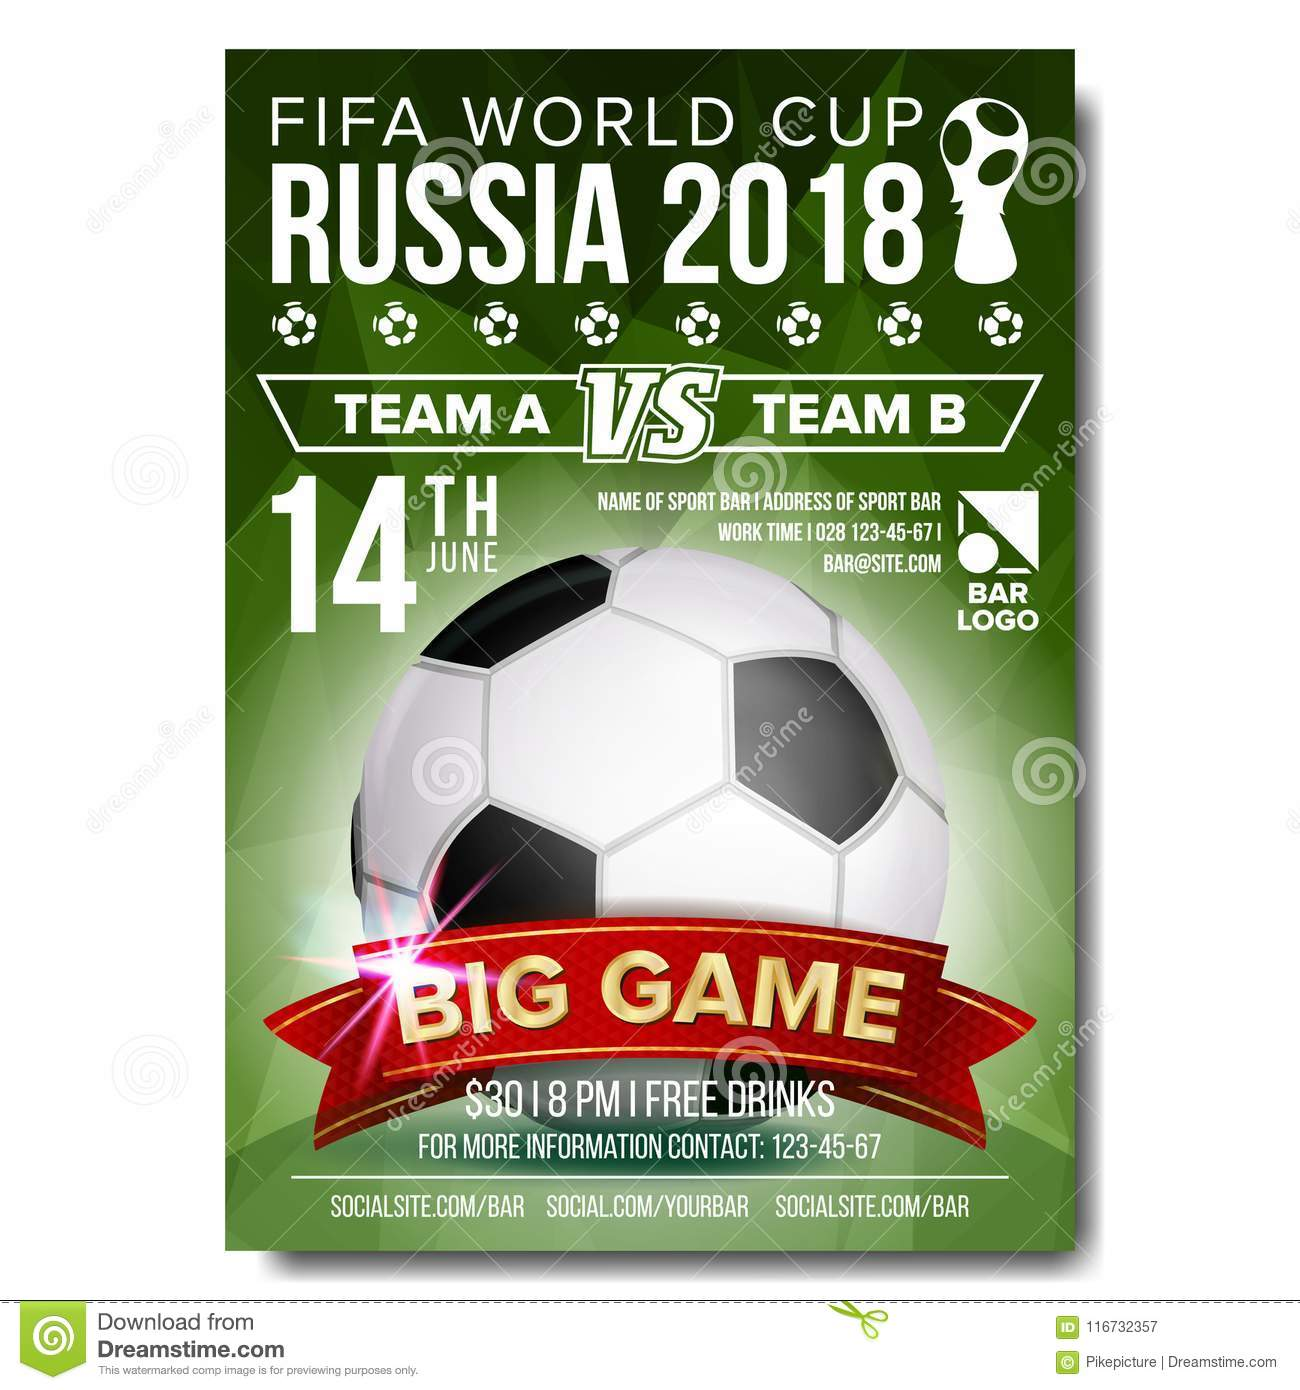 899a6e8a3 2018 FIFA World Cup Poster Vector. Russia Event. Soccer Design For Sport  Bar Promotion. Football Ball. Soccer Graphic. Modern Tournament Design.